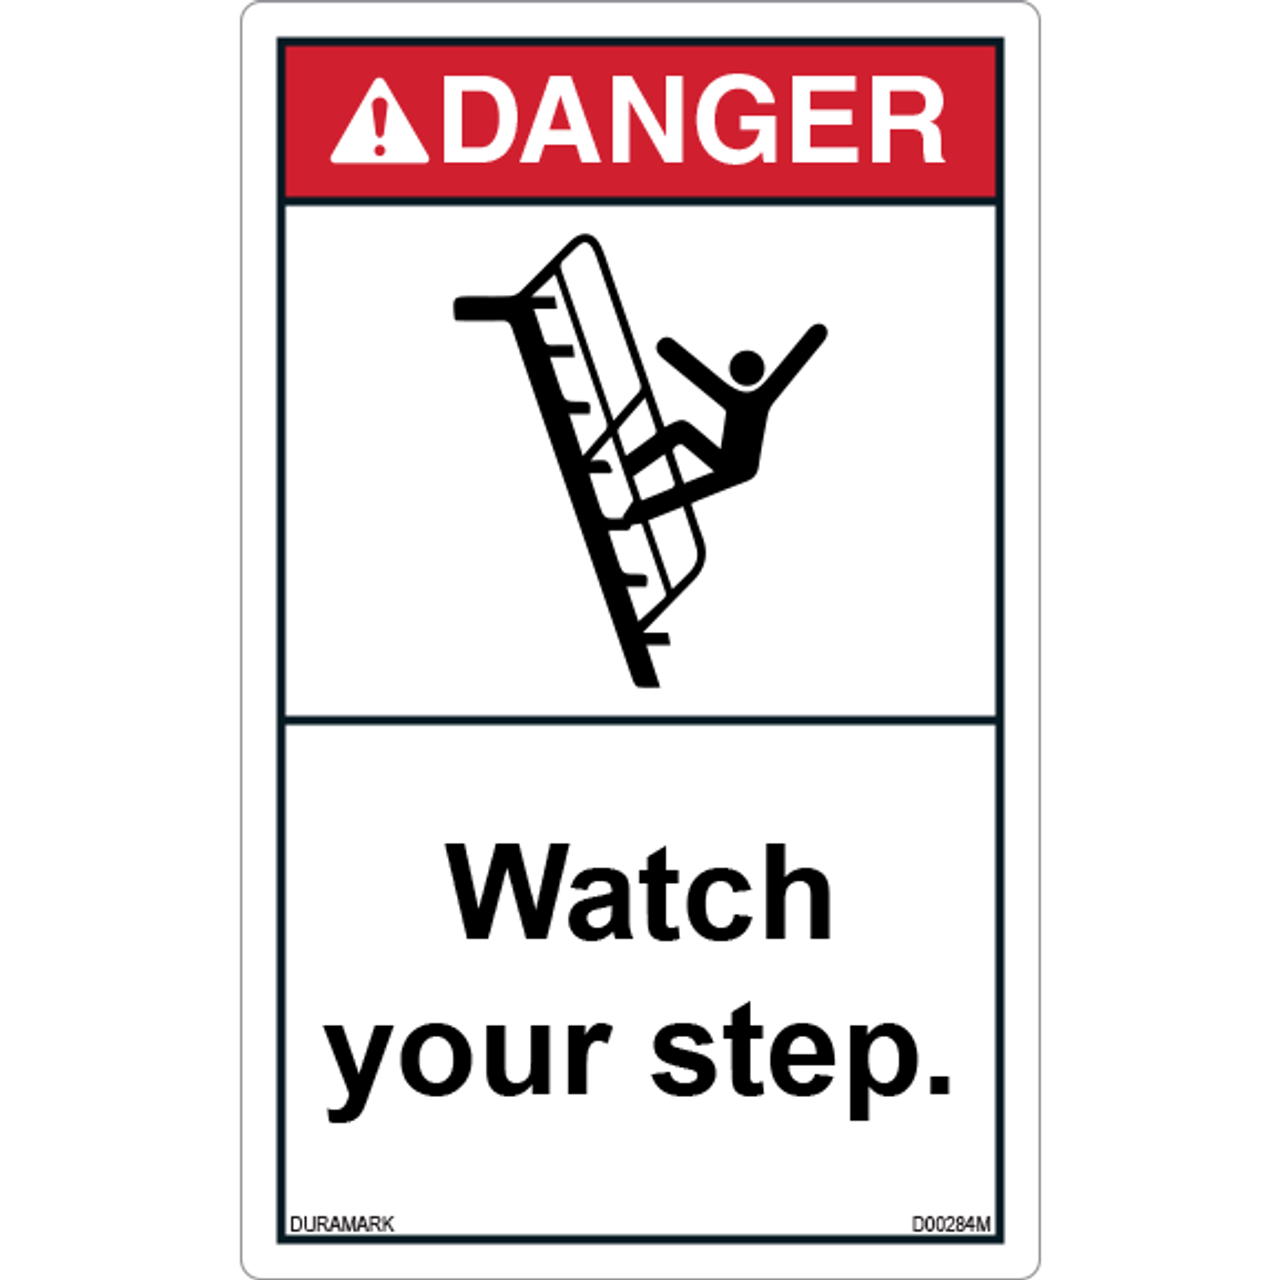 ANSI Safety Label - Danger - Watch Your Step - Falling - Vertical